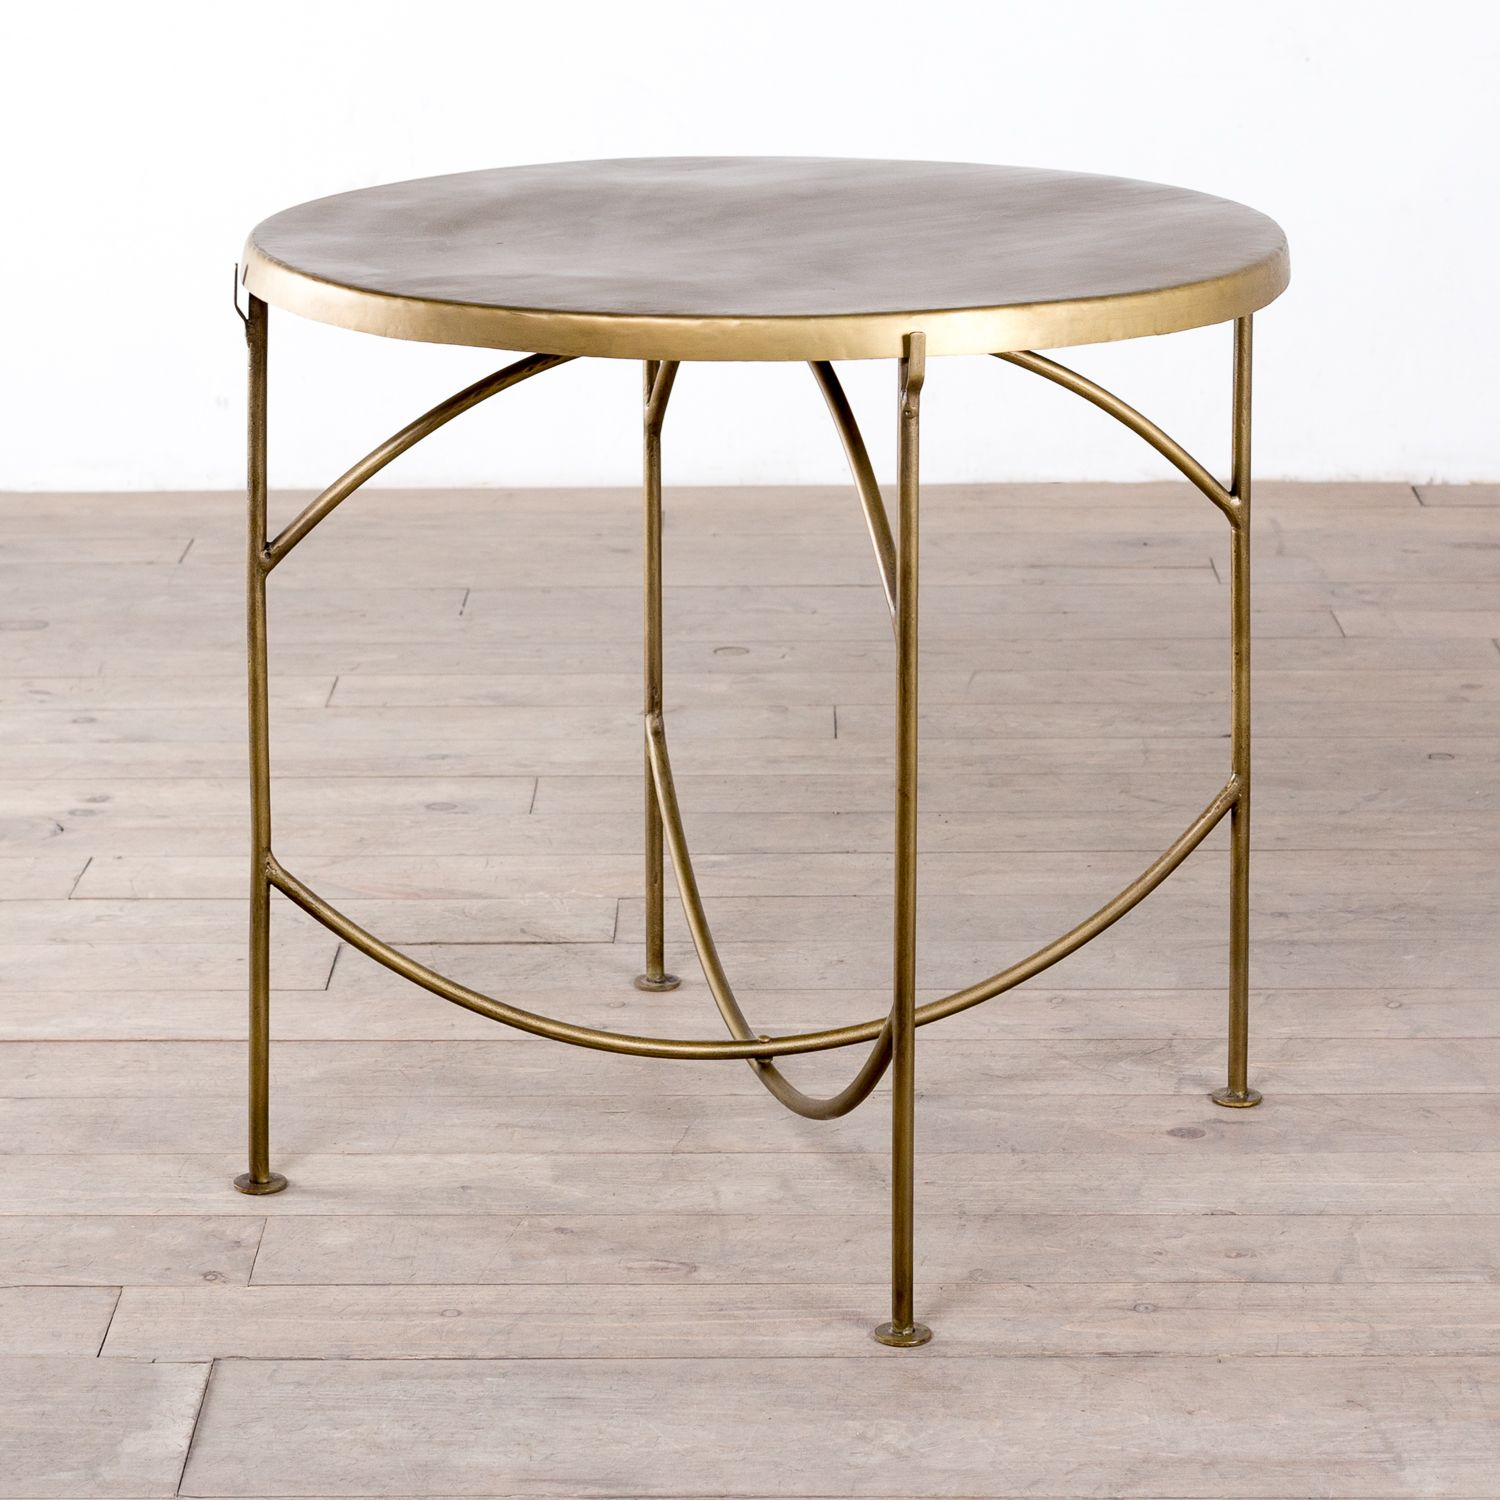 "CJ Sparks $550 32"" Reclaimed Iron KD Bistro Table Brass"